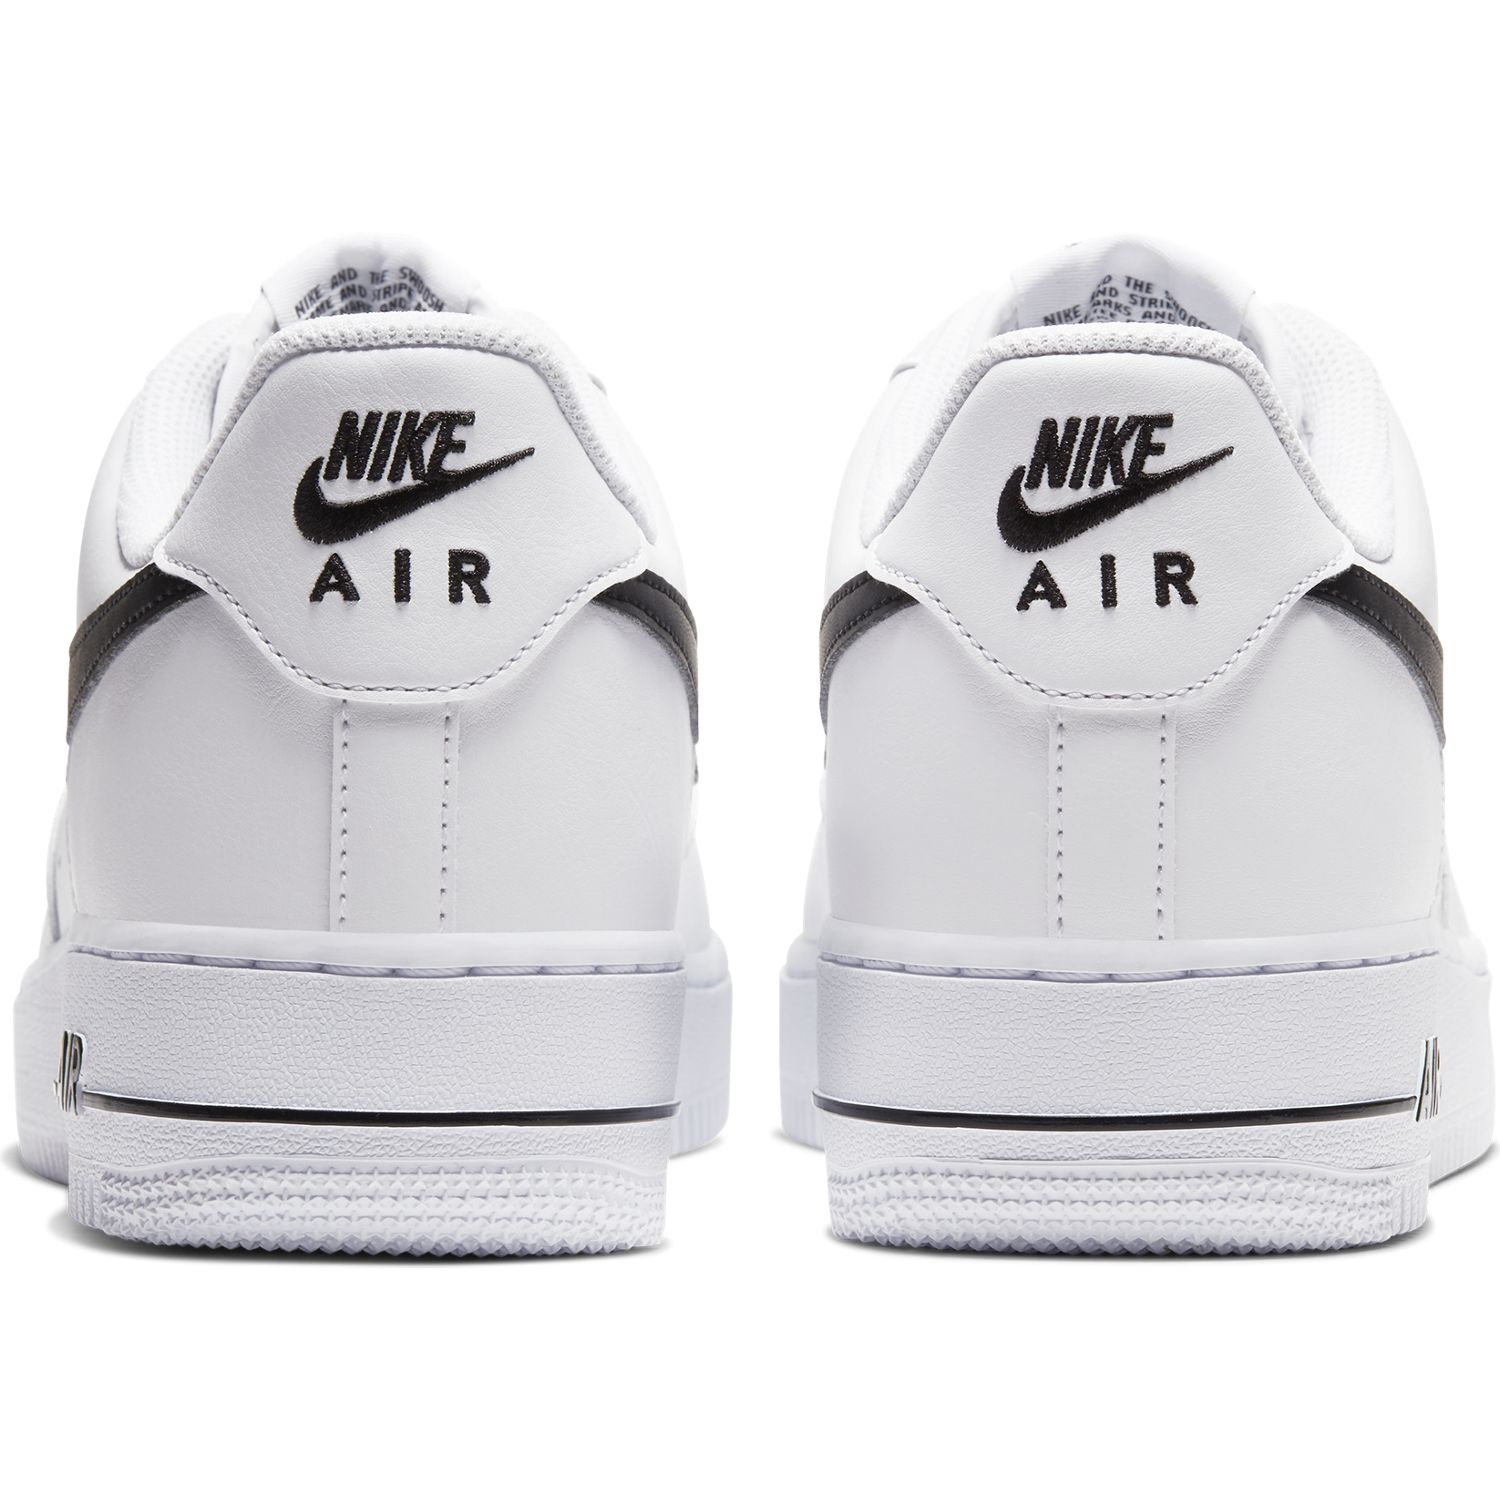 Nike Air Force 1 '07 AN20 CJ0952 100 45,5 Białe